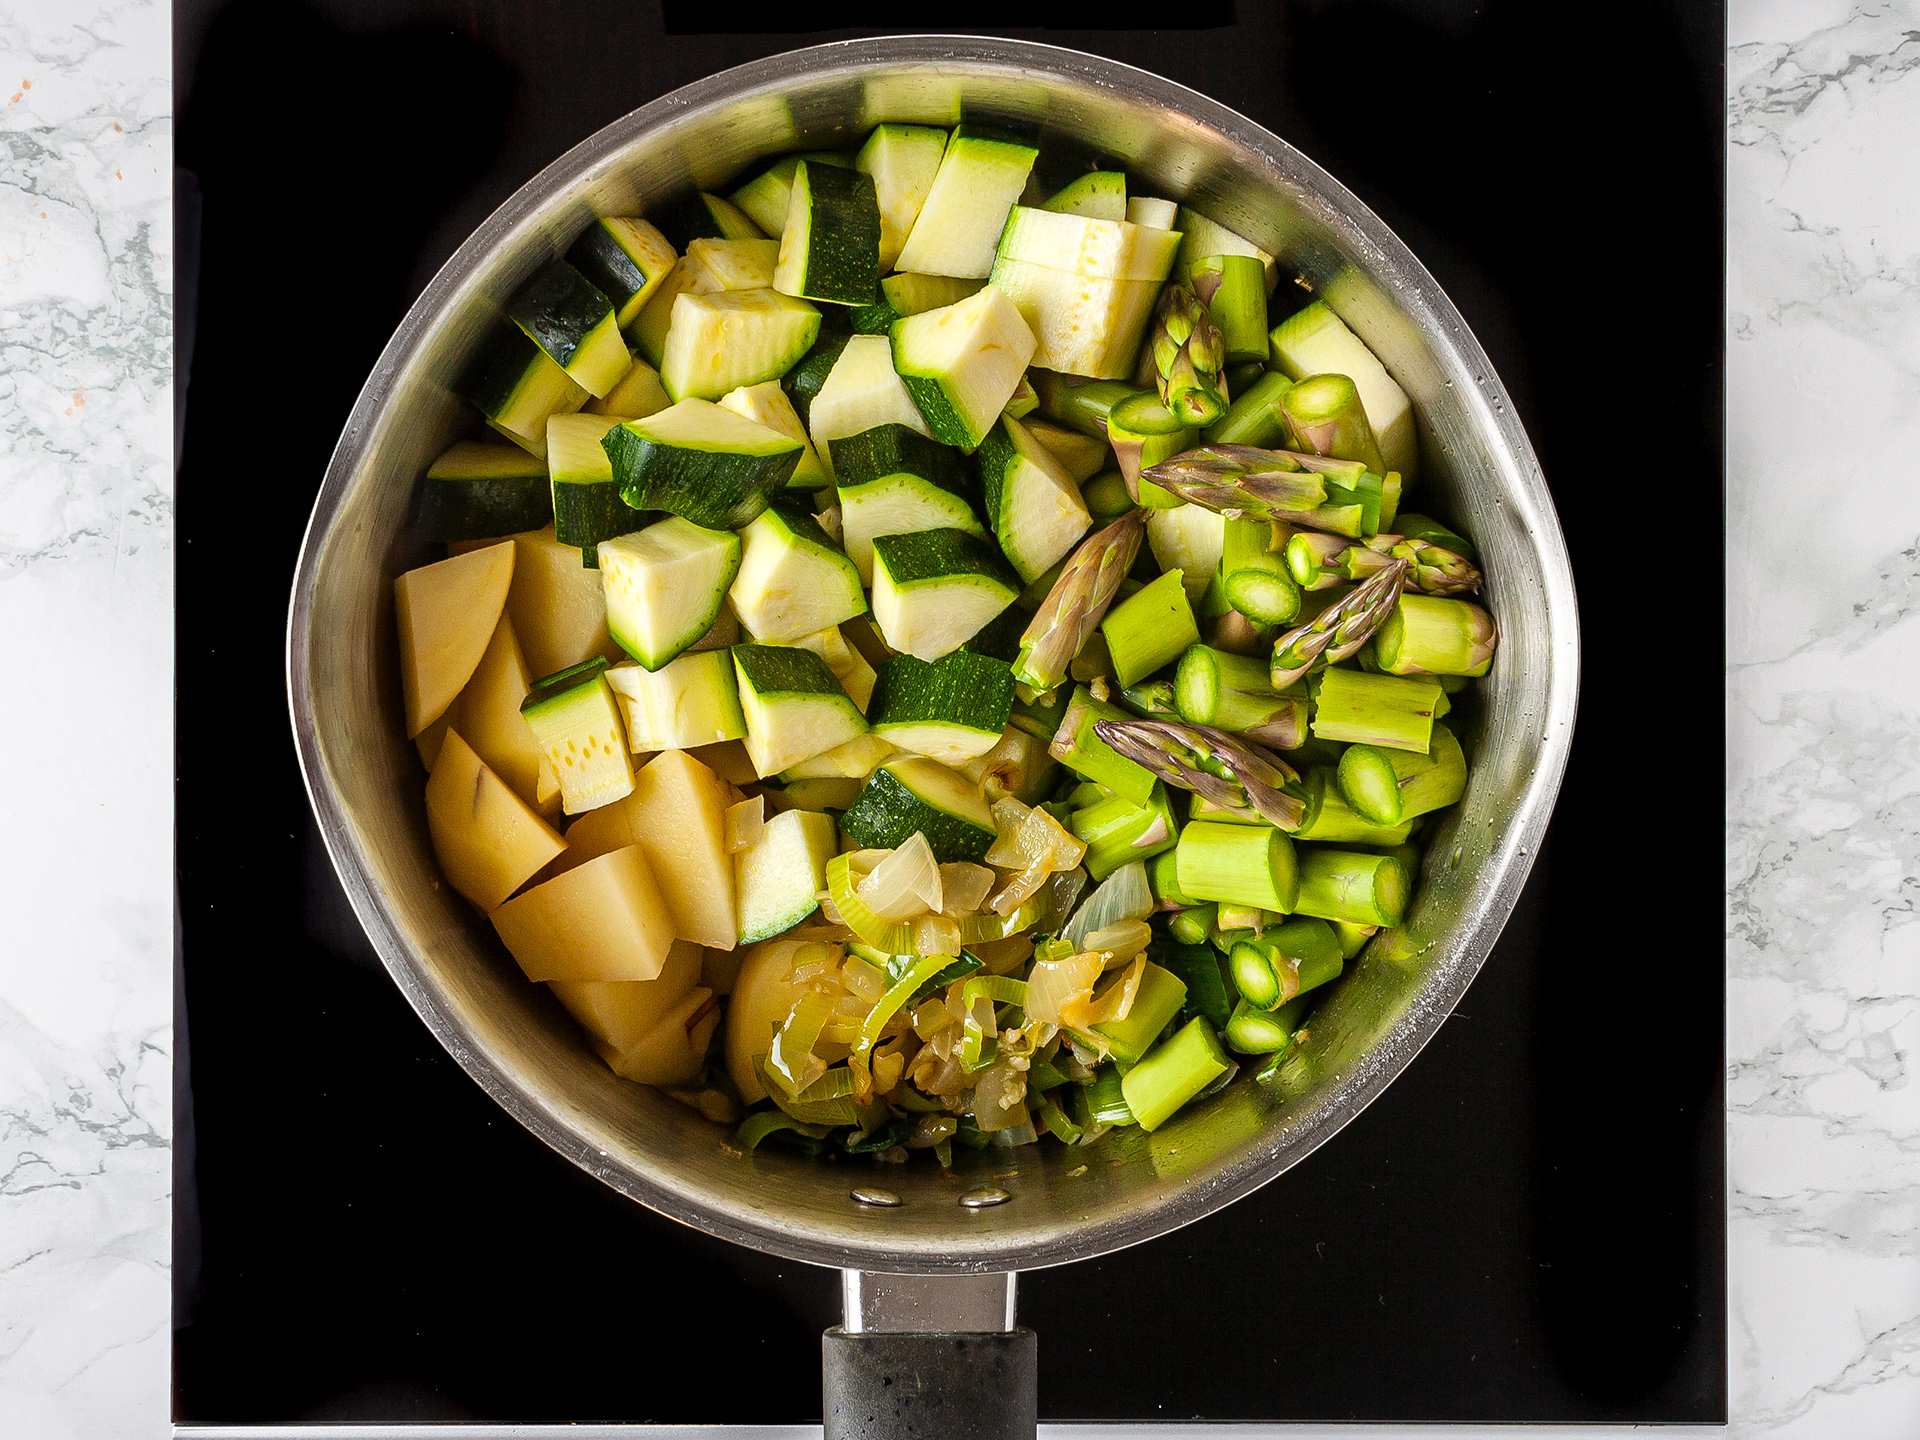 zucchini, potatoes, leeks, asparagus cooking in a pan